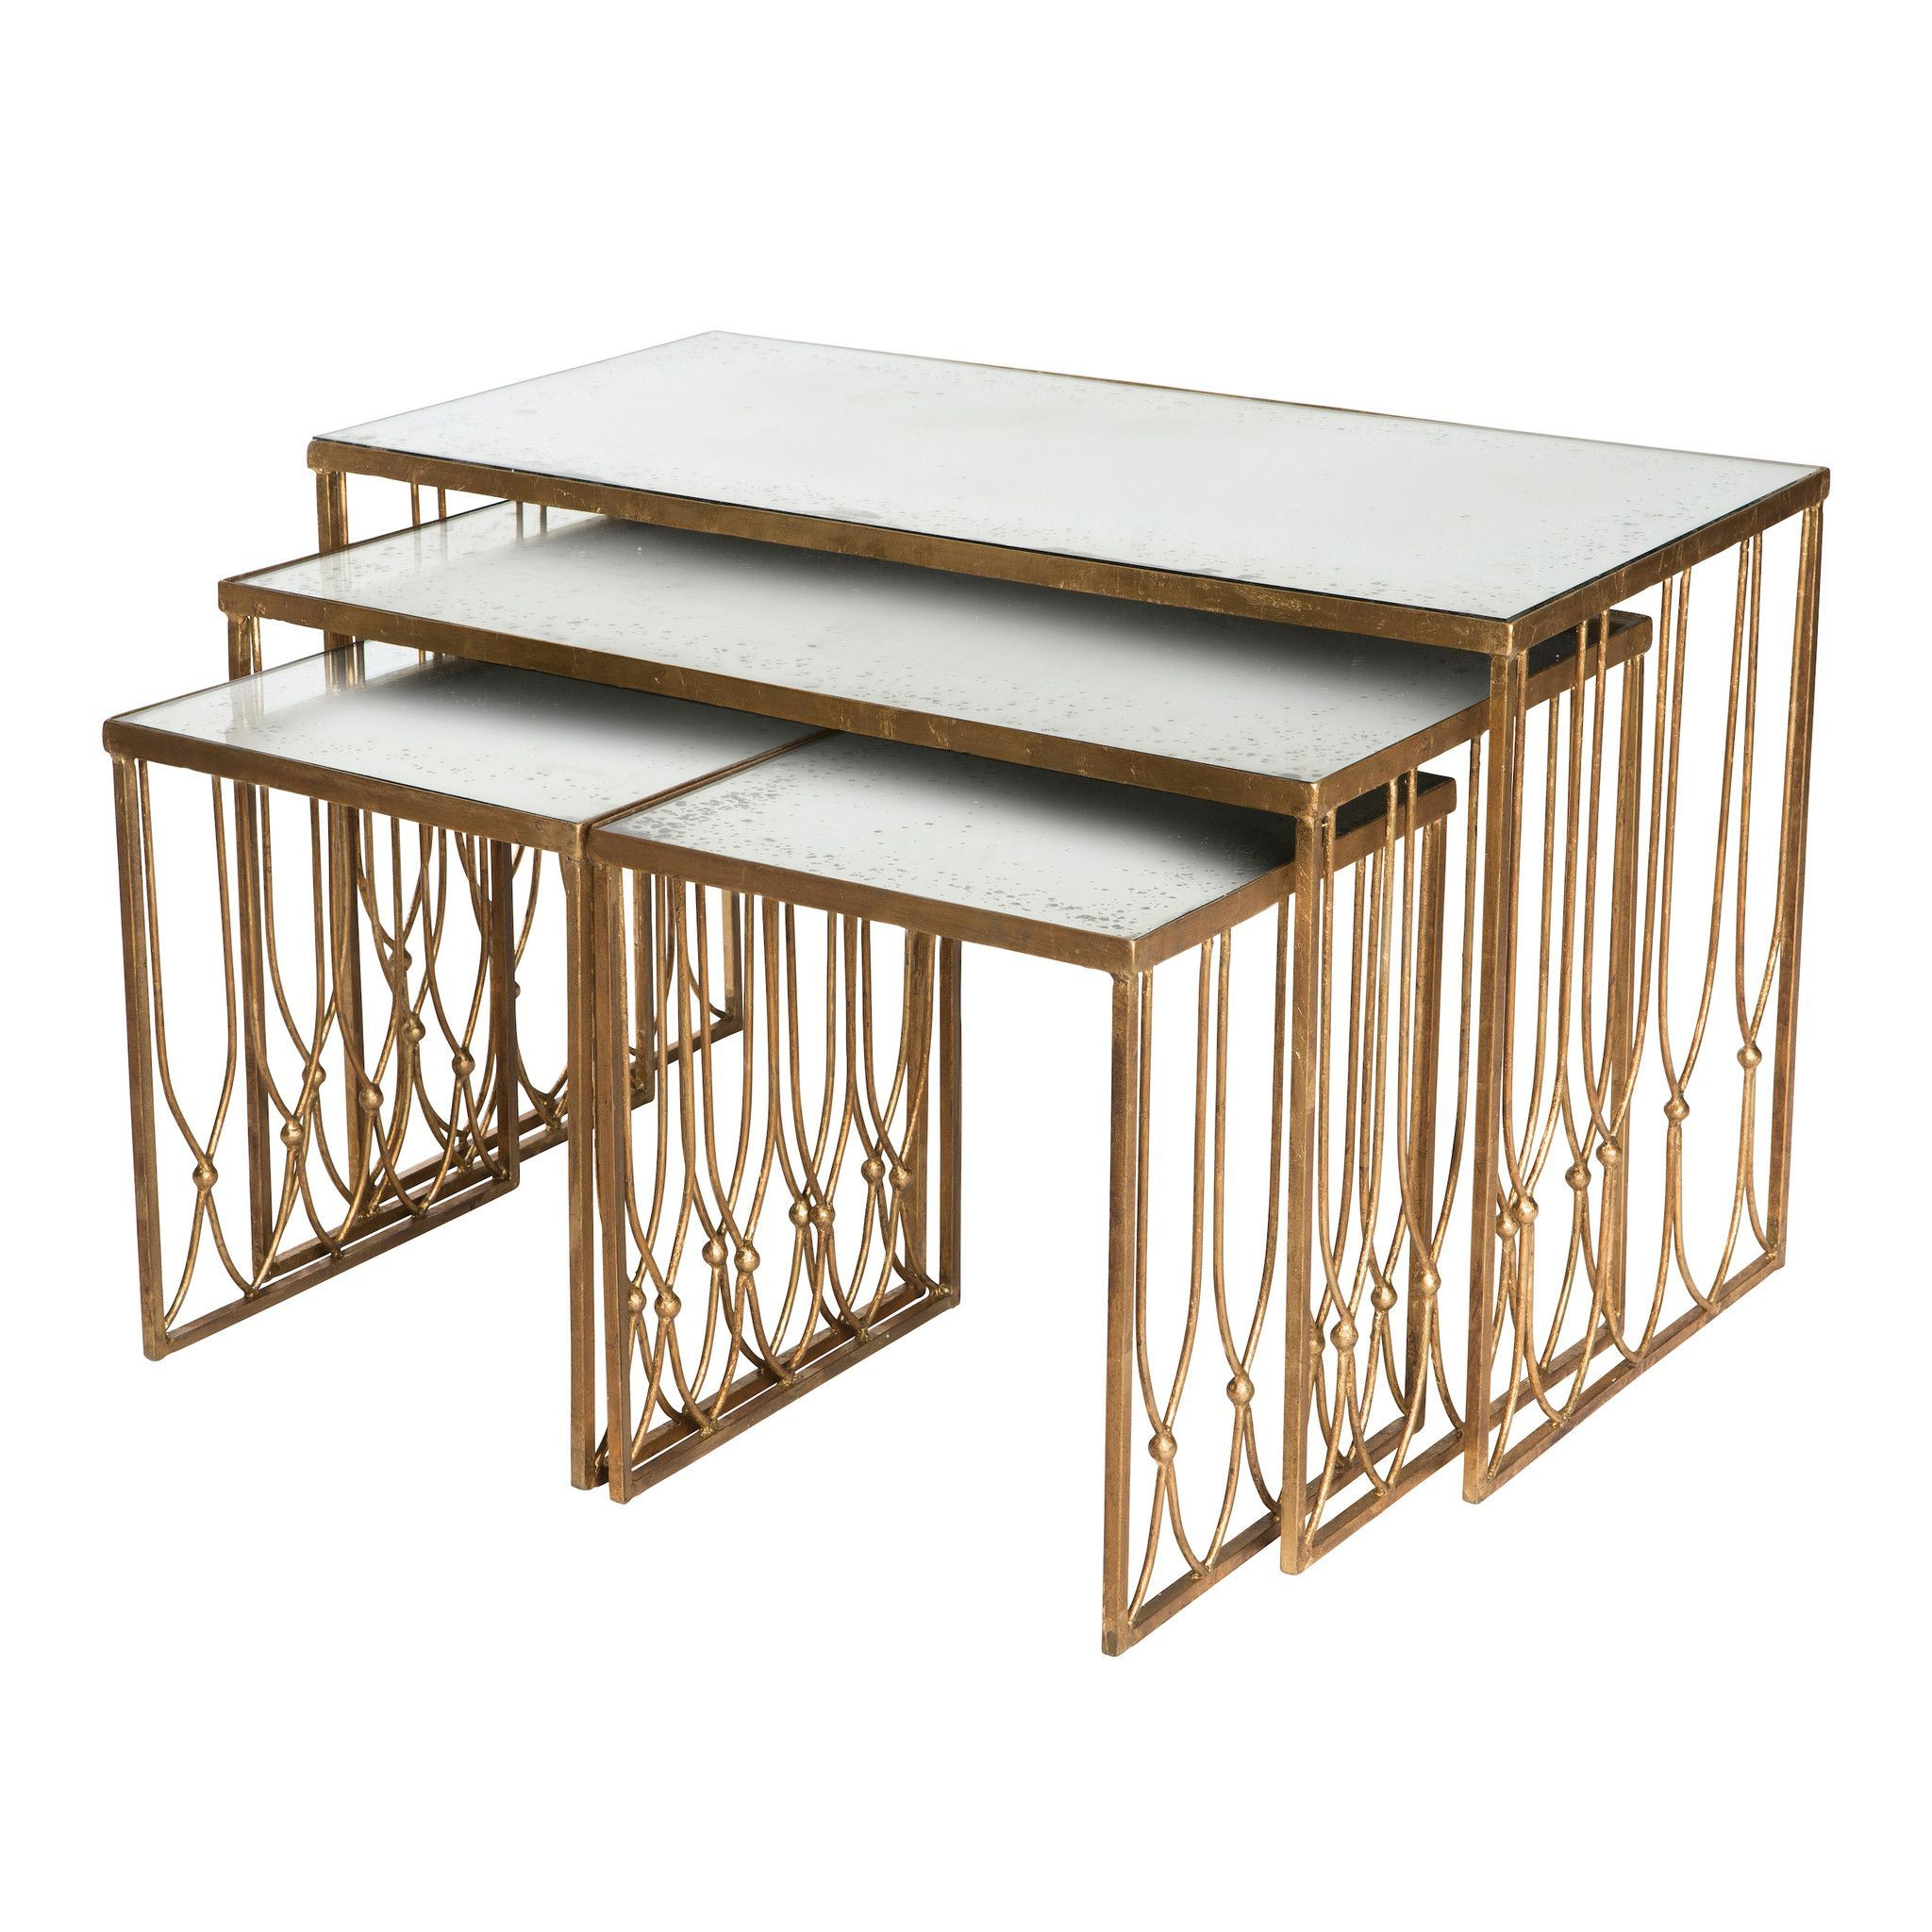 Grubb Nested Coffee Tables Set design by Aidan Gray